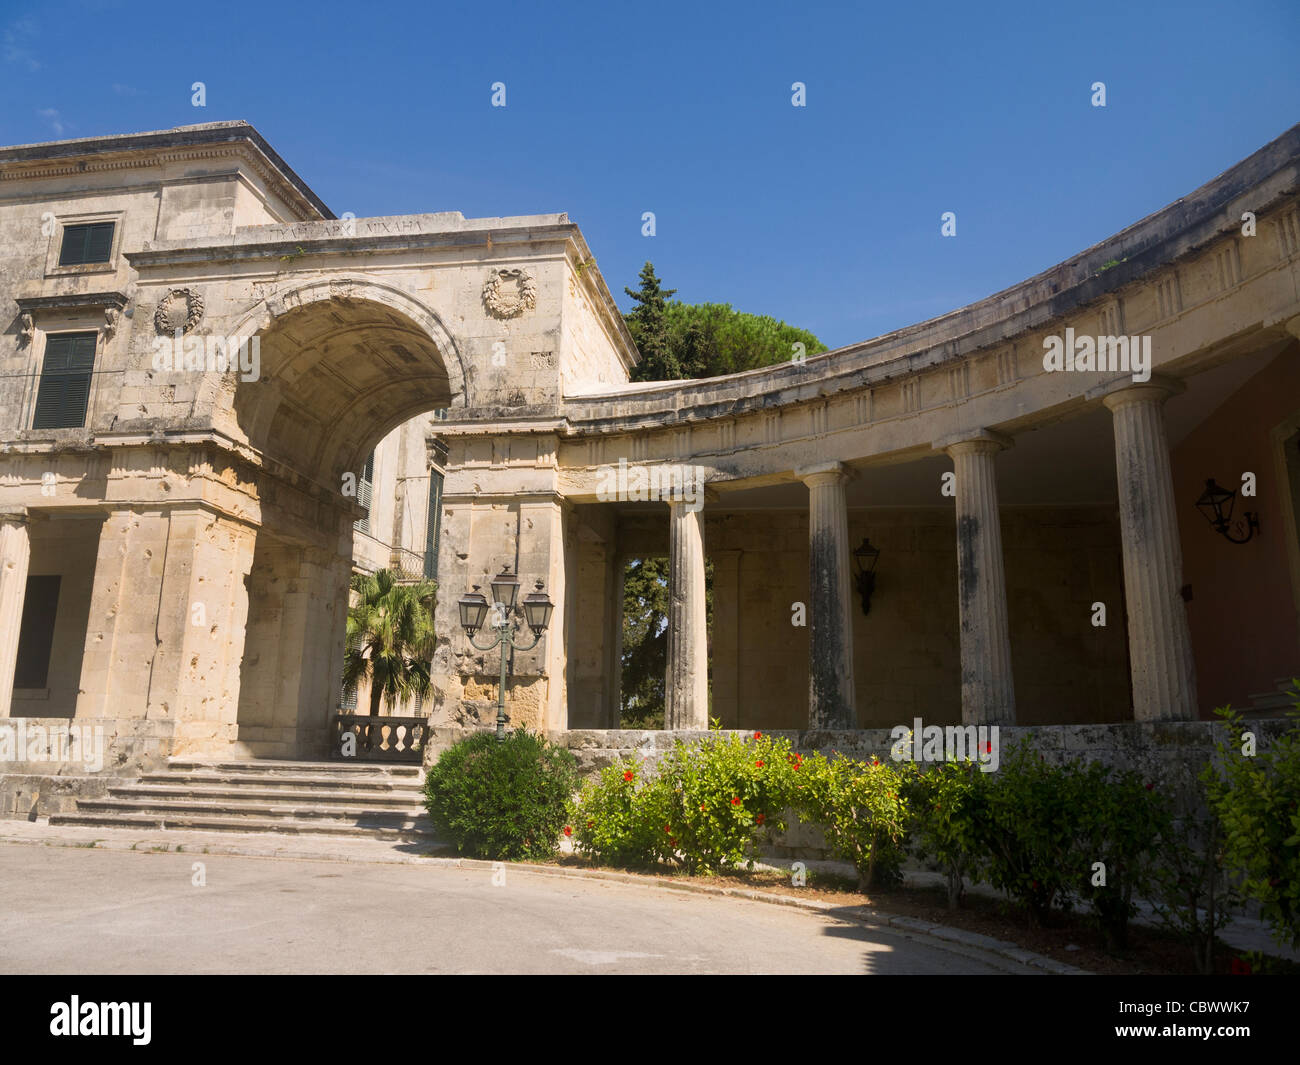 Former British Government buildings now museums  in Corfu town Ionian Islands Greece - Stock Image